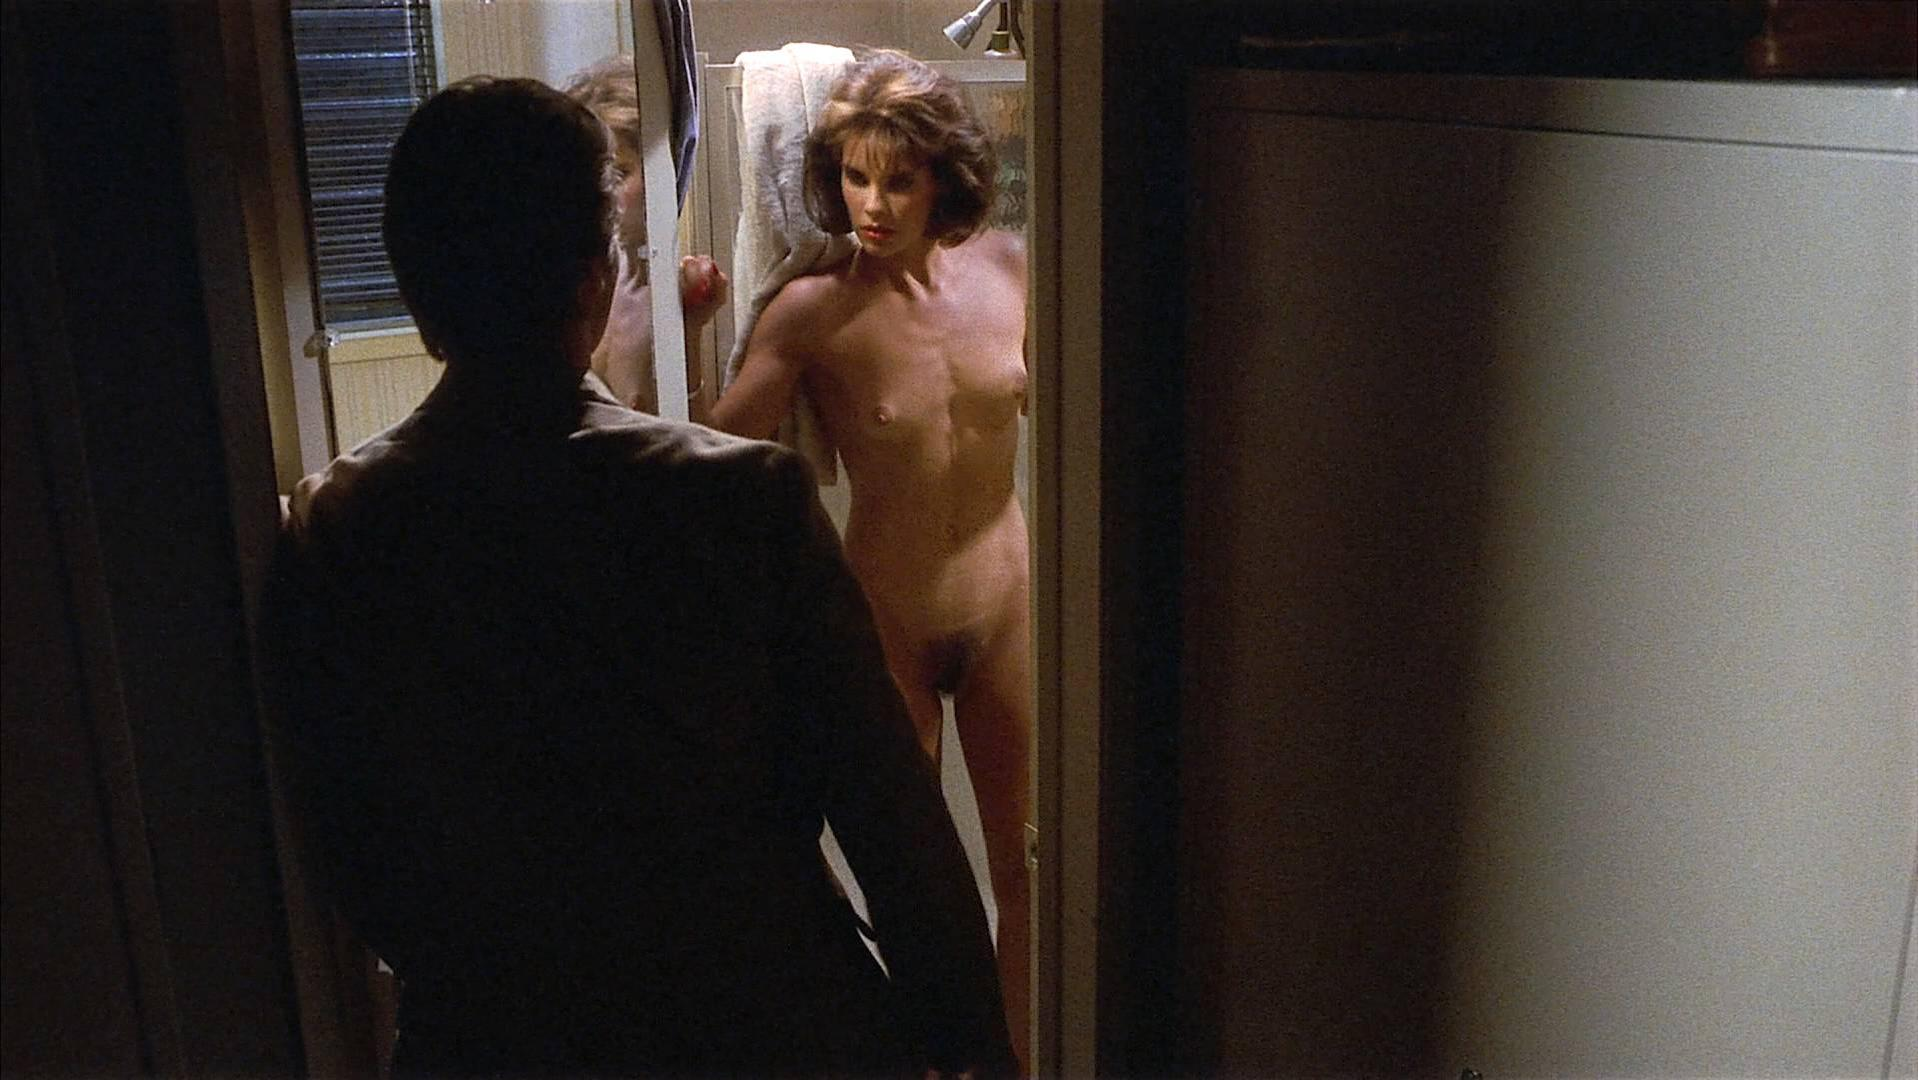 Andrea Osvárt Nue celebs nude movies archives - page 258 of 283 - ppps.tv